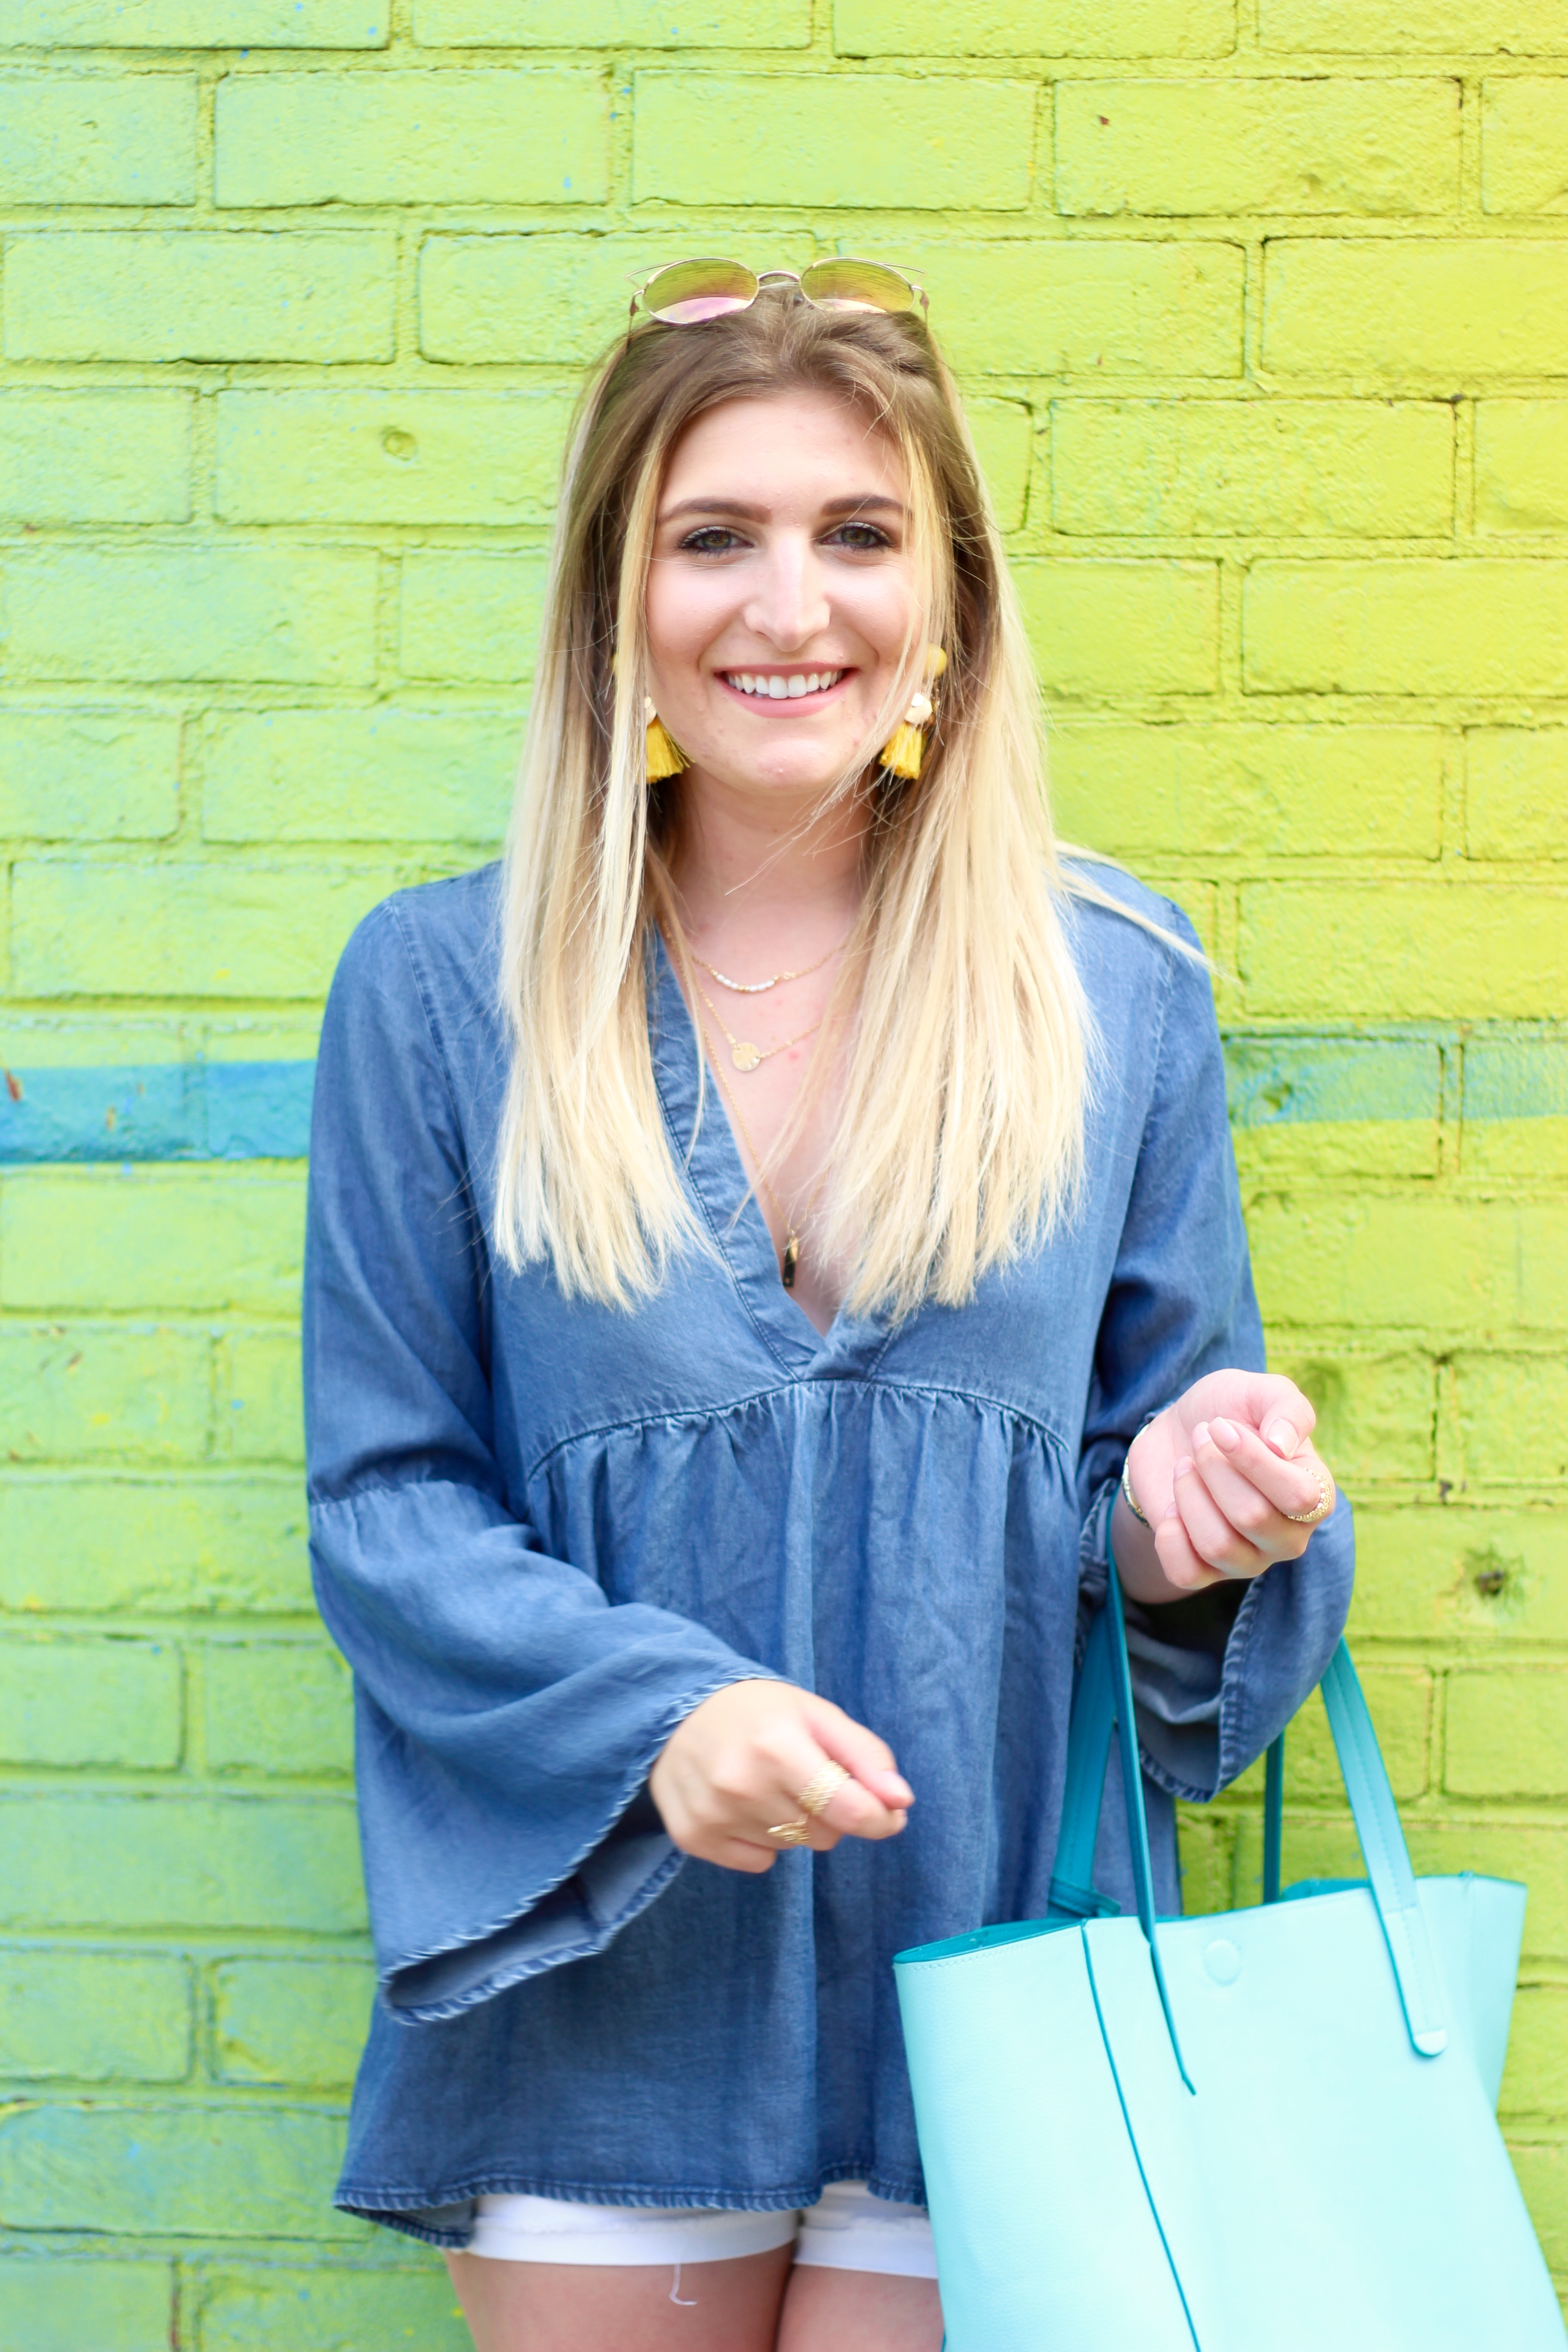 fashion blogger in brooklyn for the summer | Audrey Madison Stowe Blog - Rainbow Wall in Brooklyn by popular Texas travel blogger Audrey Madison Stowe